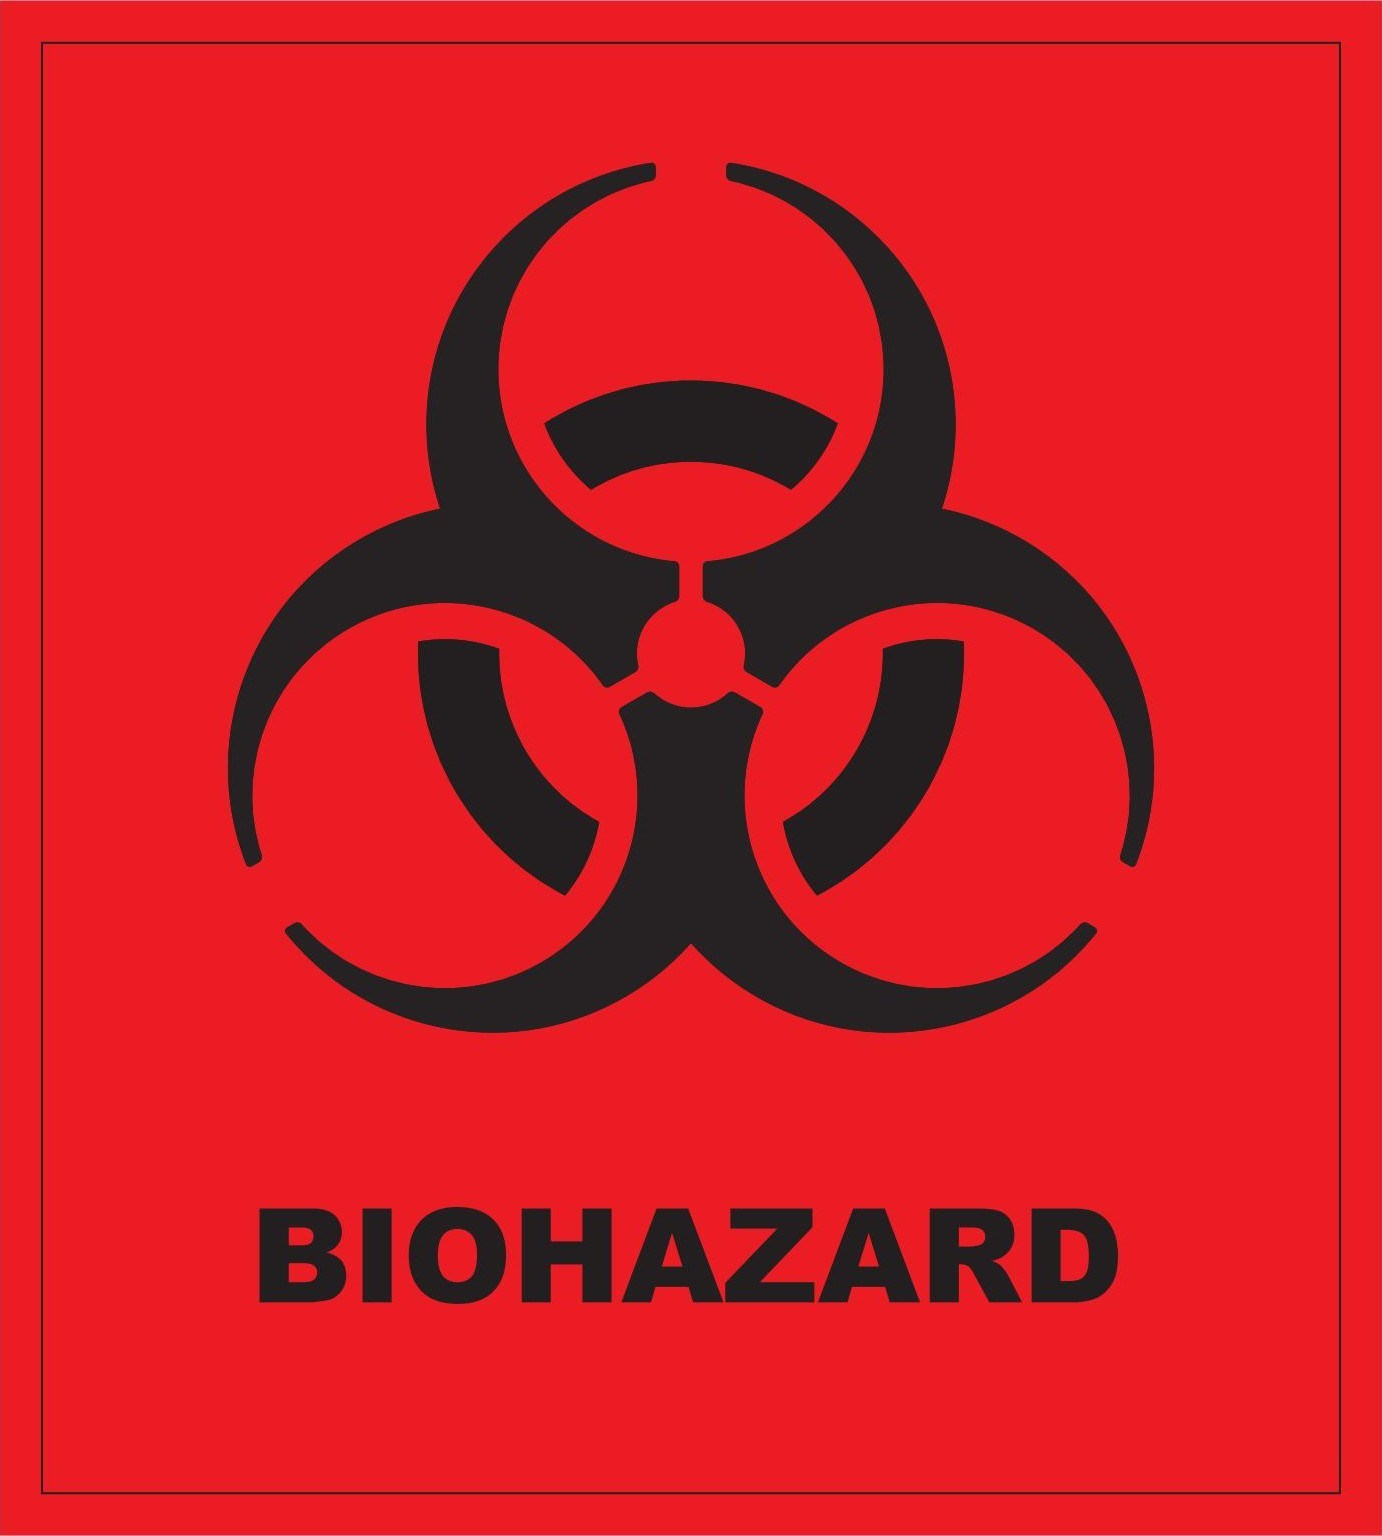 BioHazard Sign png